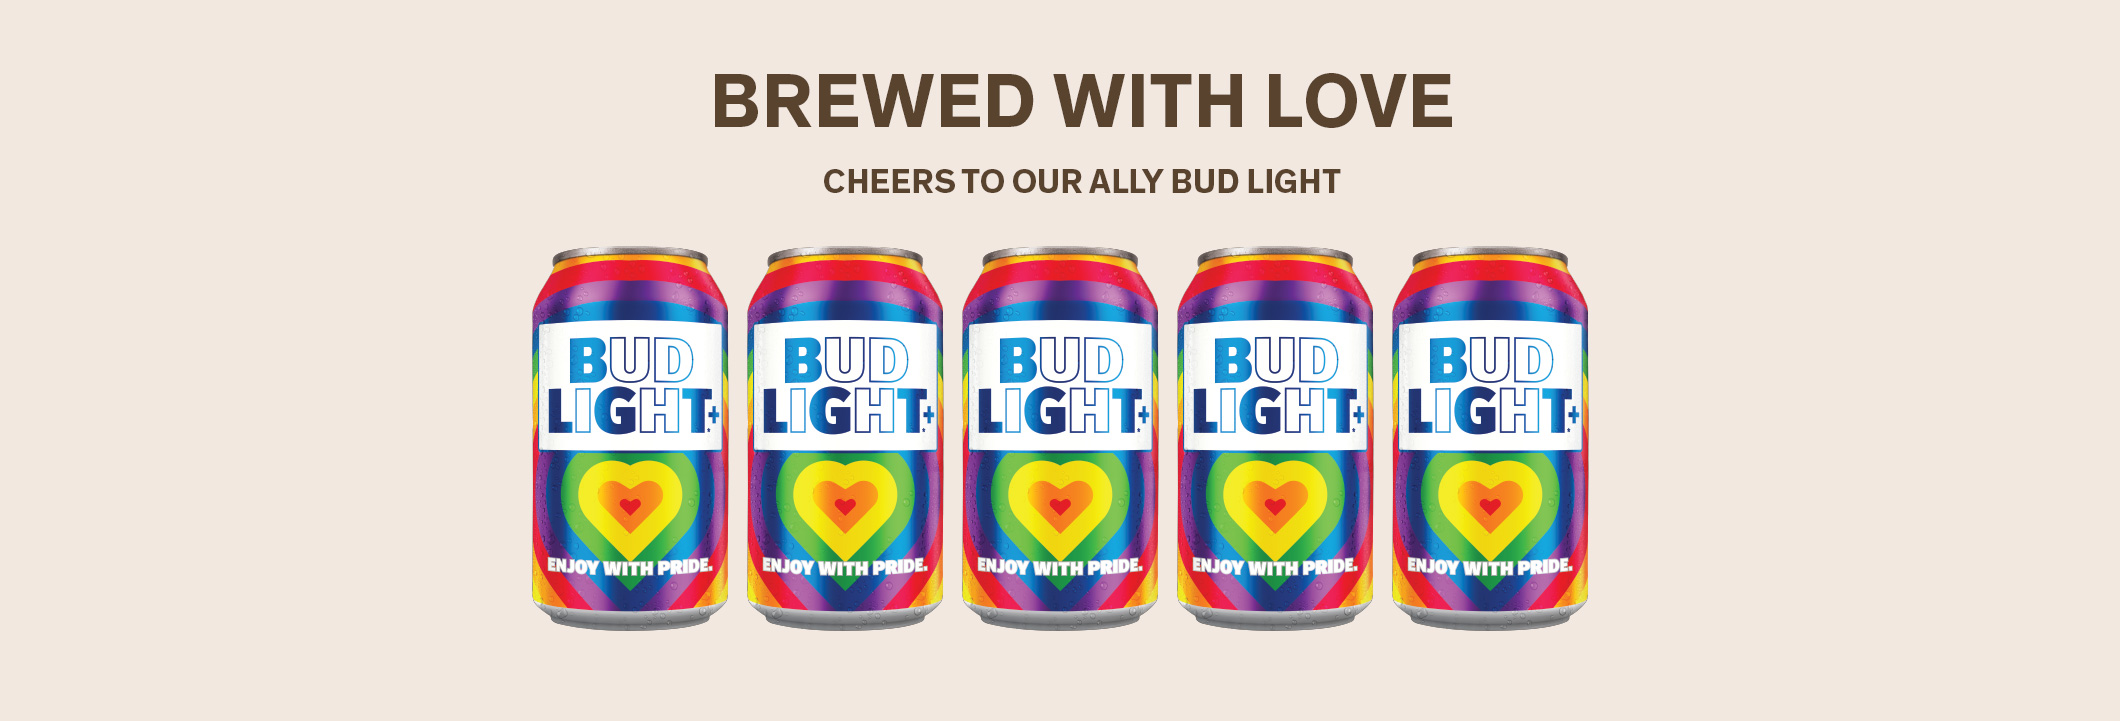 BREWED WITH LOVE Cheers to Our Ally Bud Light